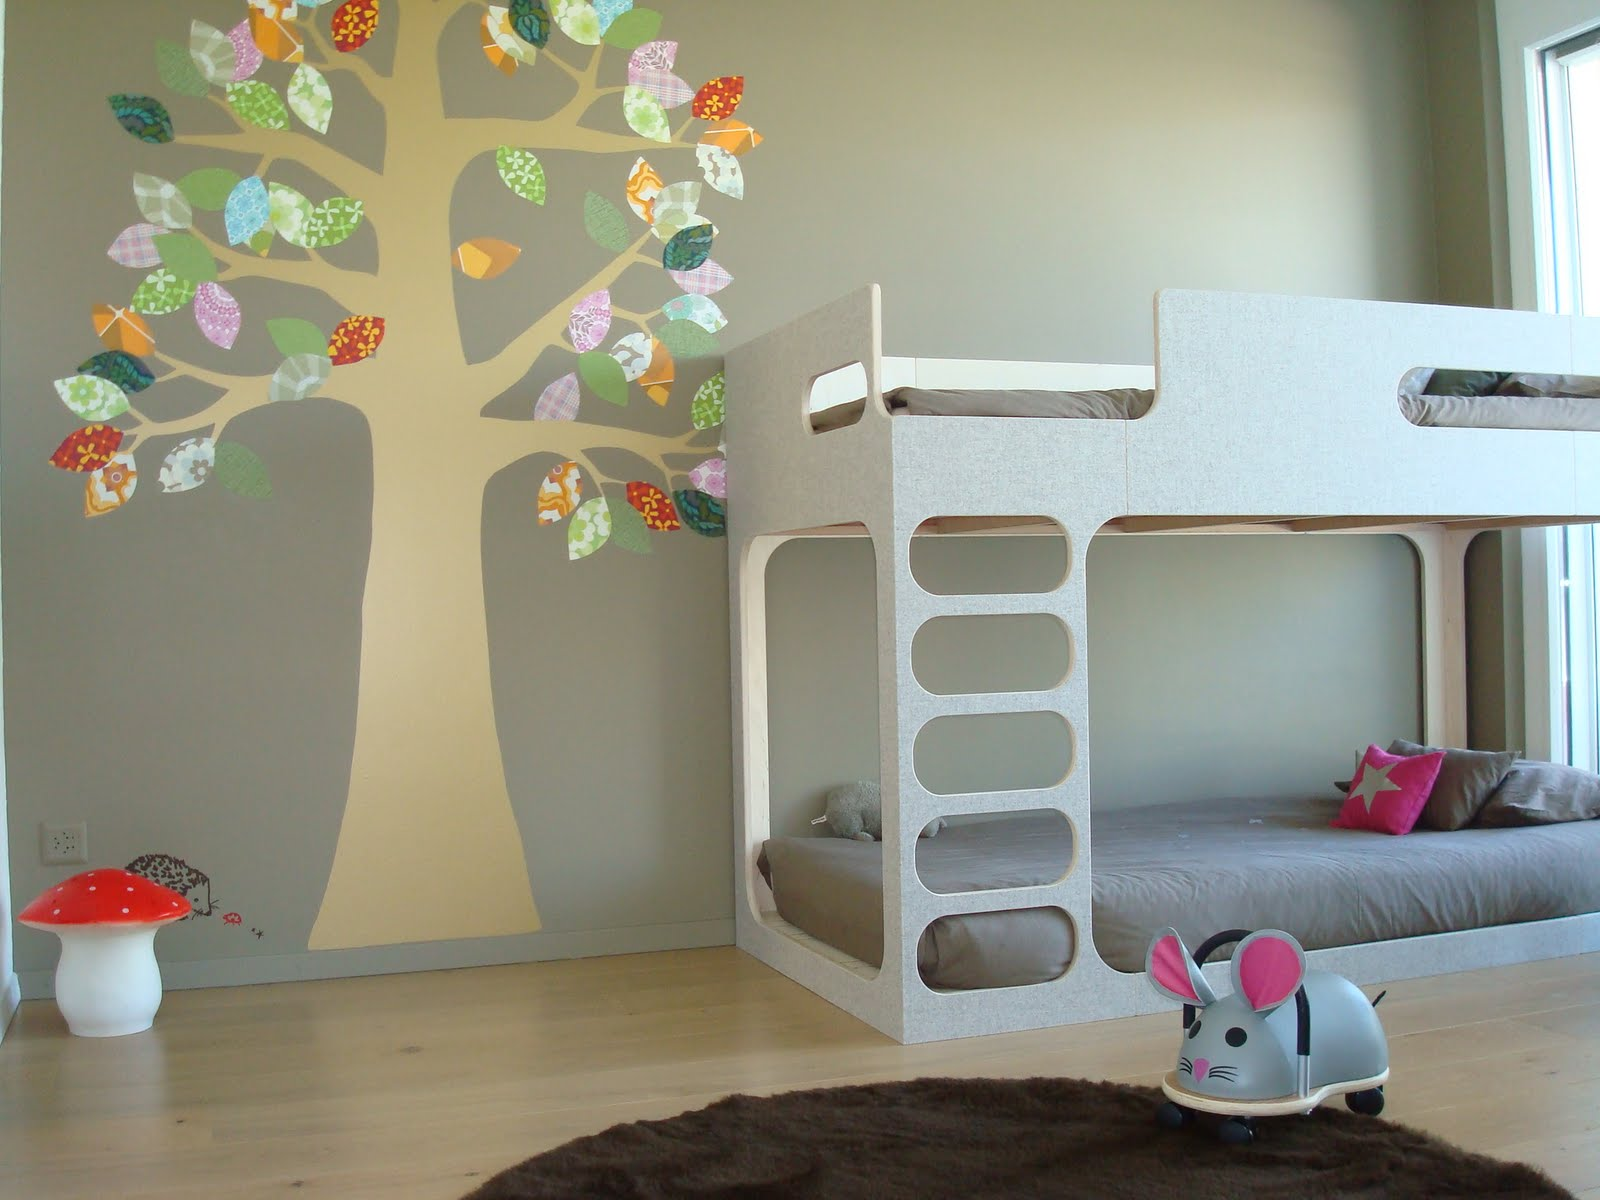 Childrens bedroom wallpaper ideas home decor uk for Wallpaper decoration for bedroom